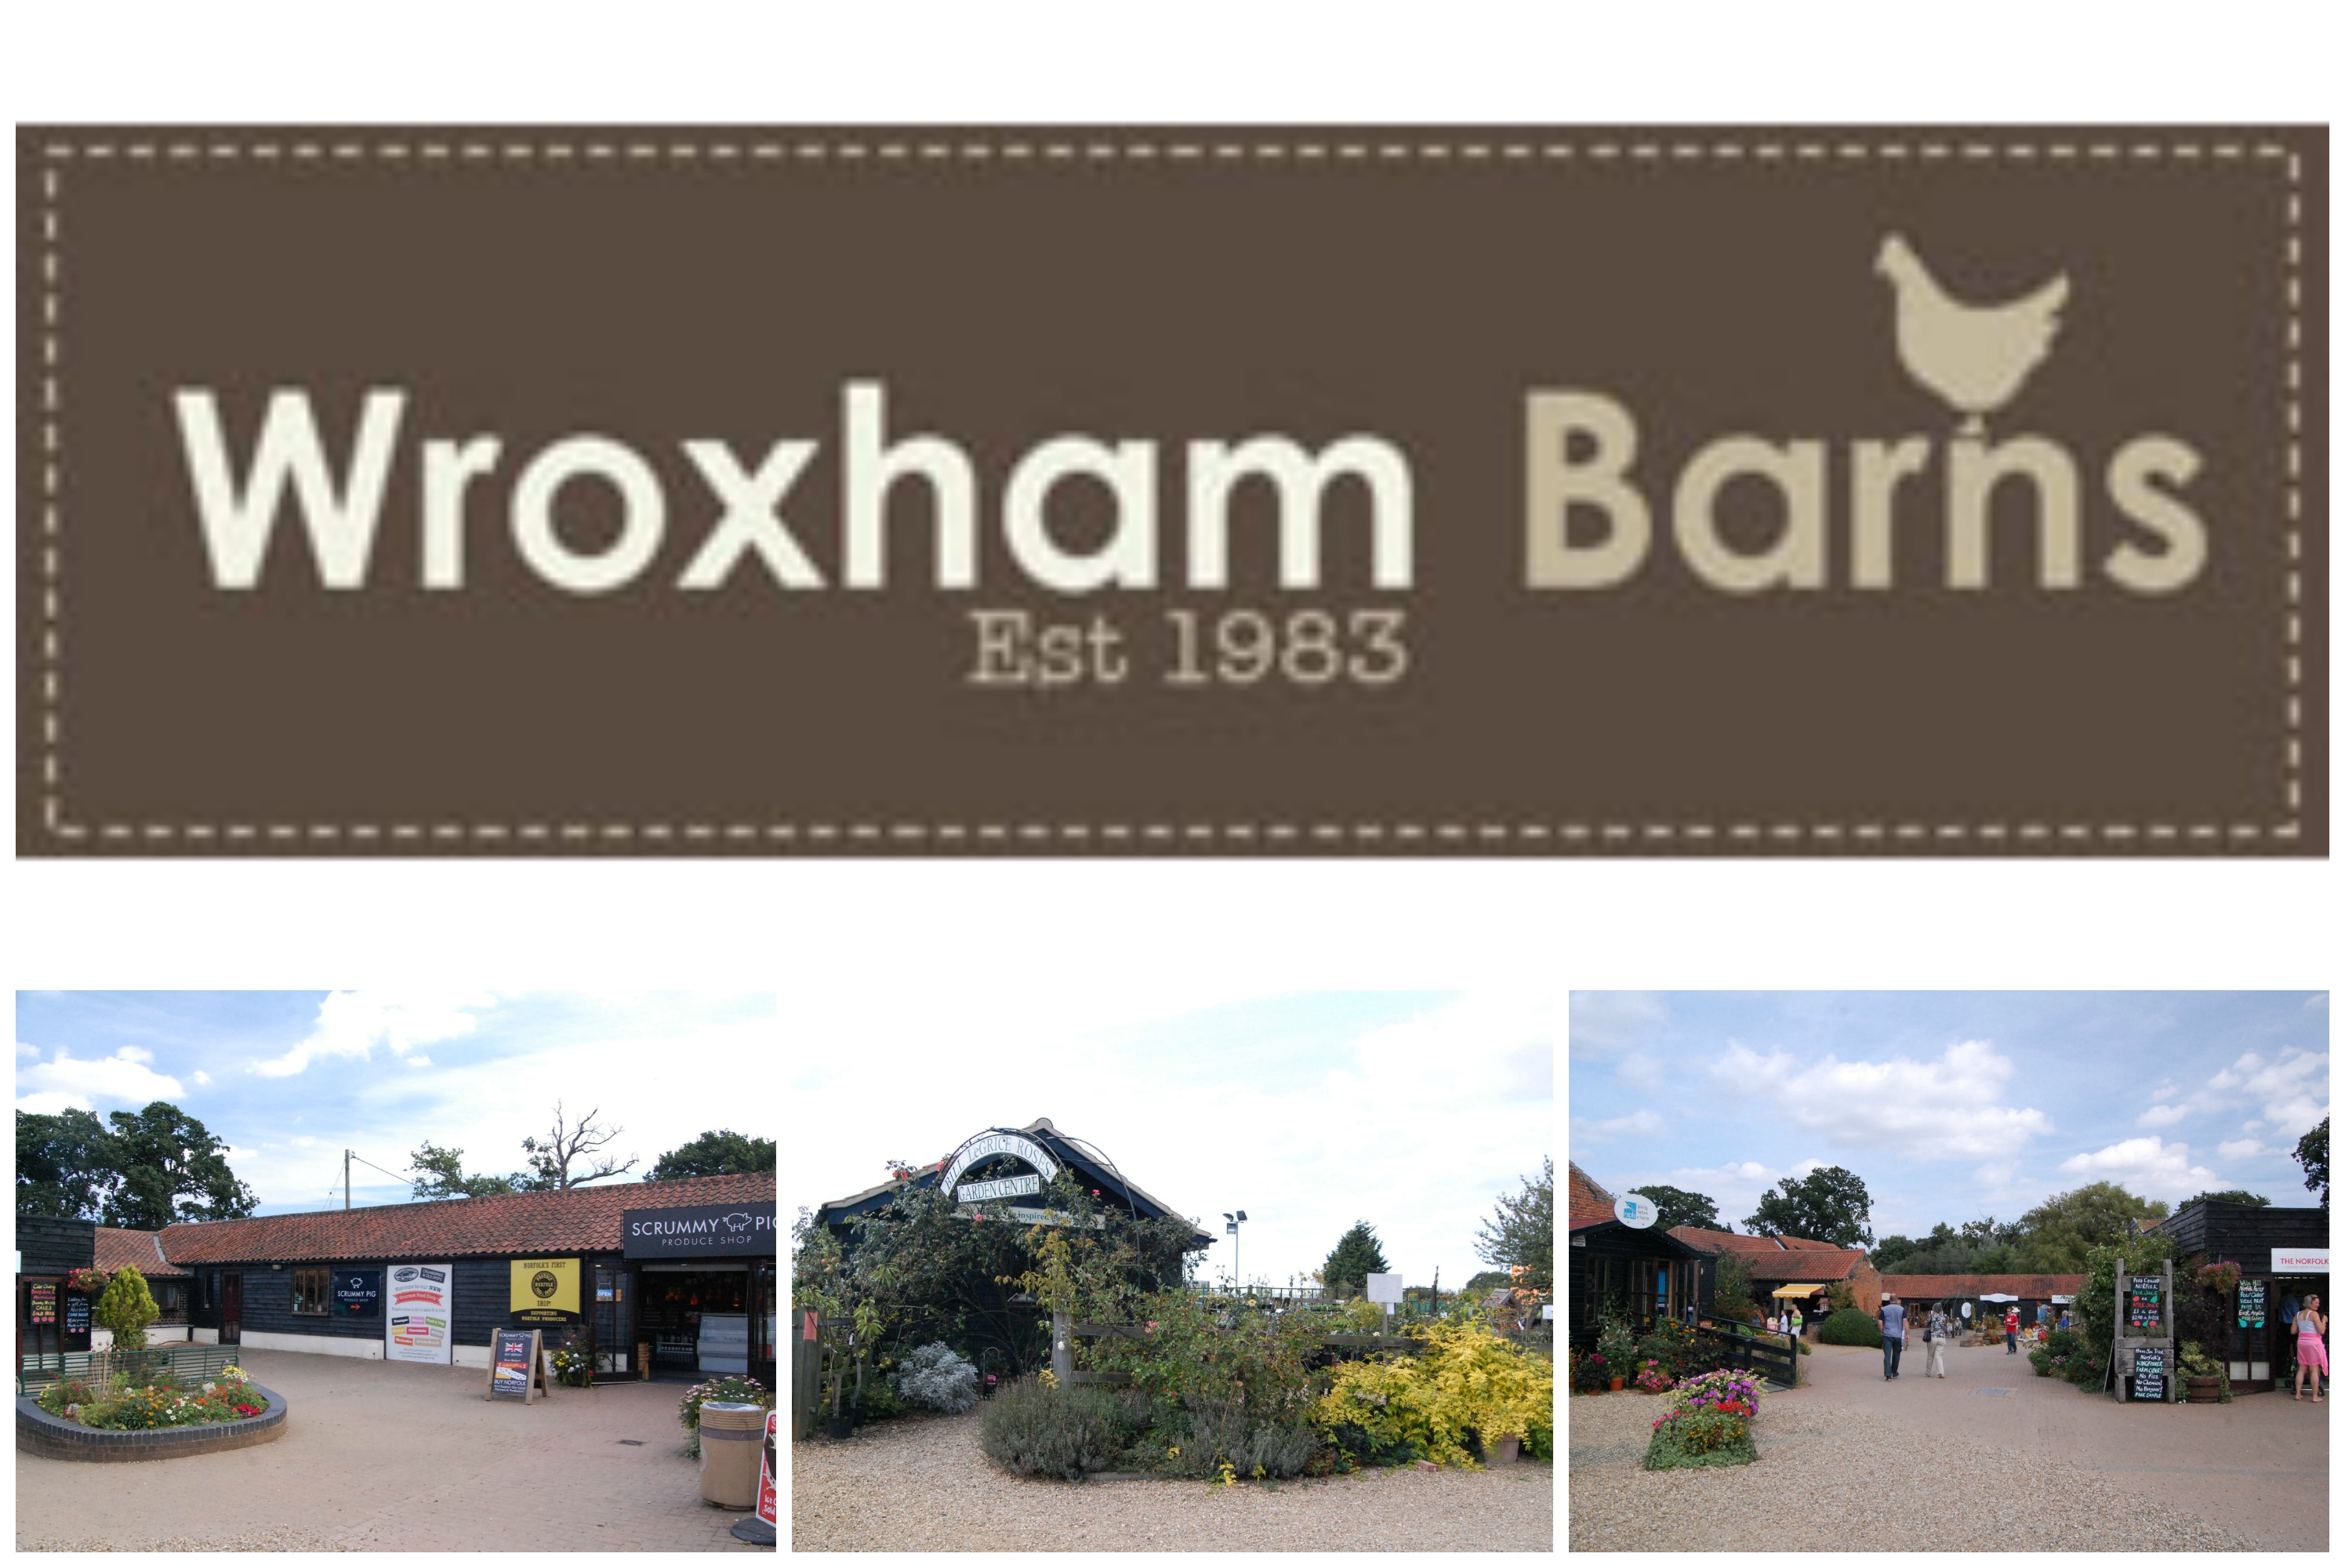 Review: A Family Day Out at Wroxham Barns